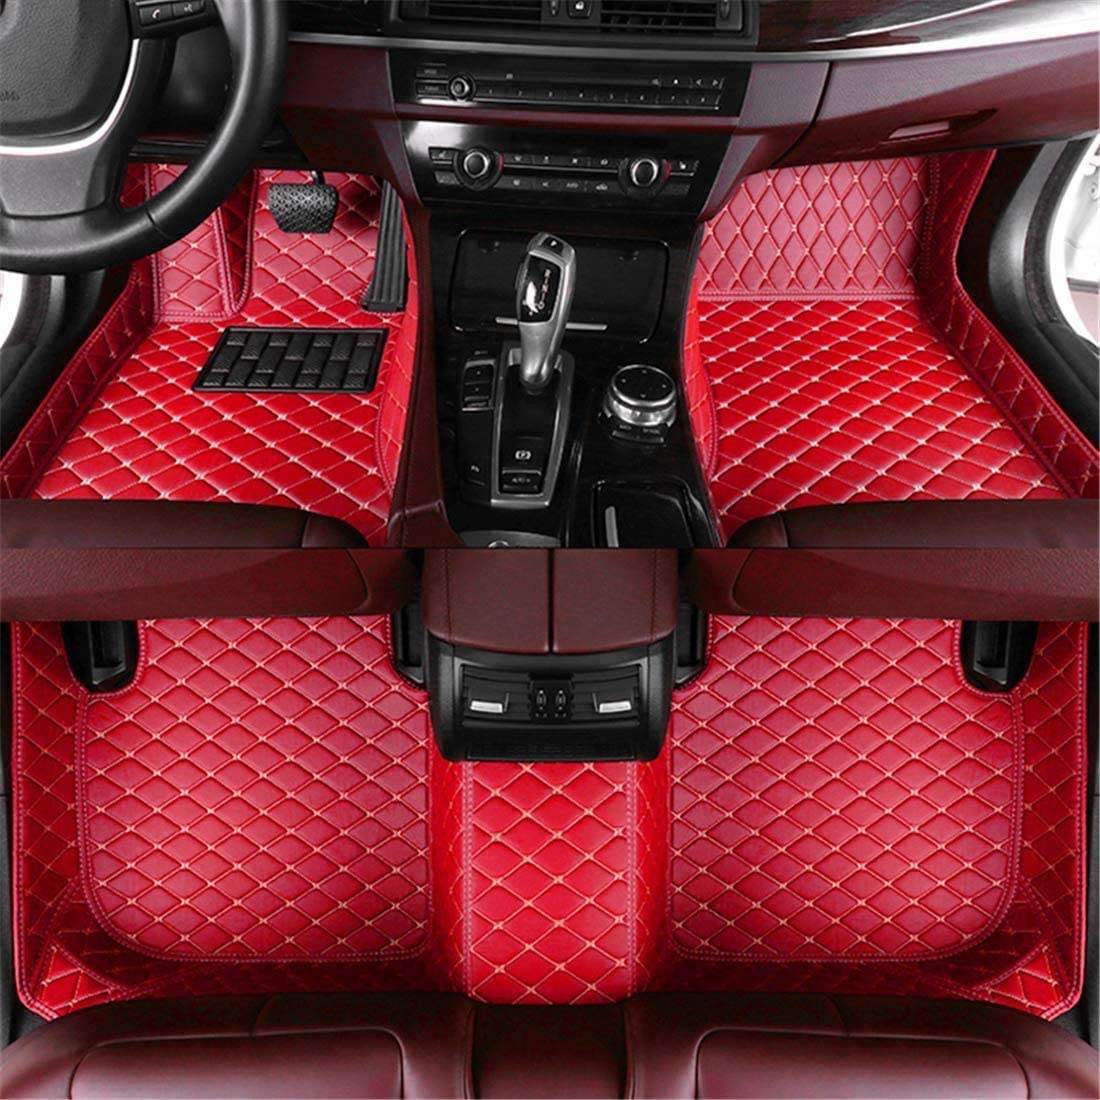 Muchkey car Floor Mats fit for Ford Mustang GT500 Shelby 2005-2009 Full Coverage All Weather Protection Non-Slip Leather Floor Liners red